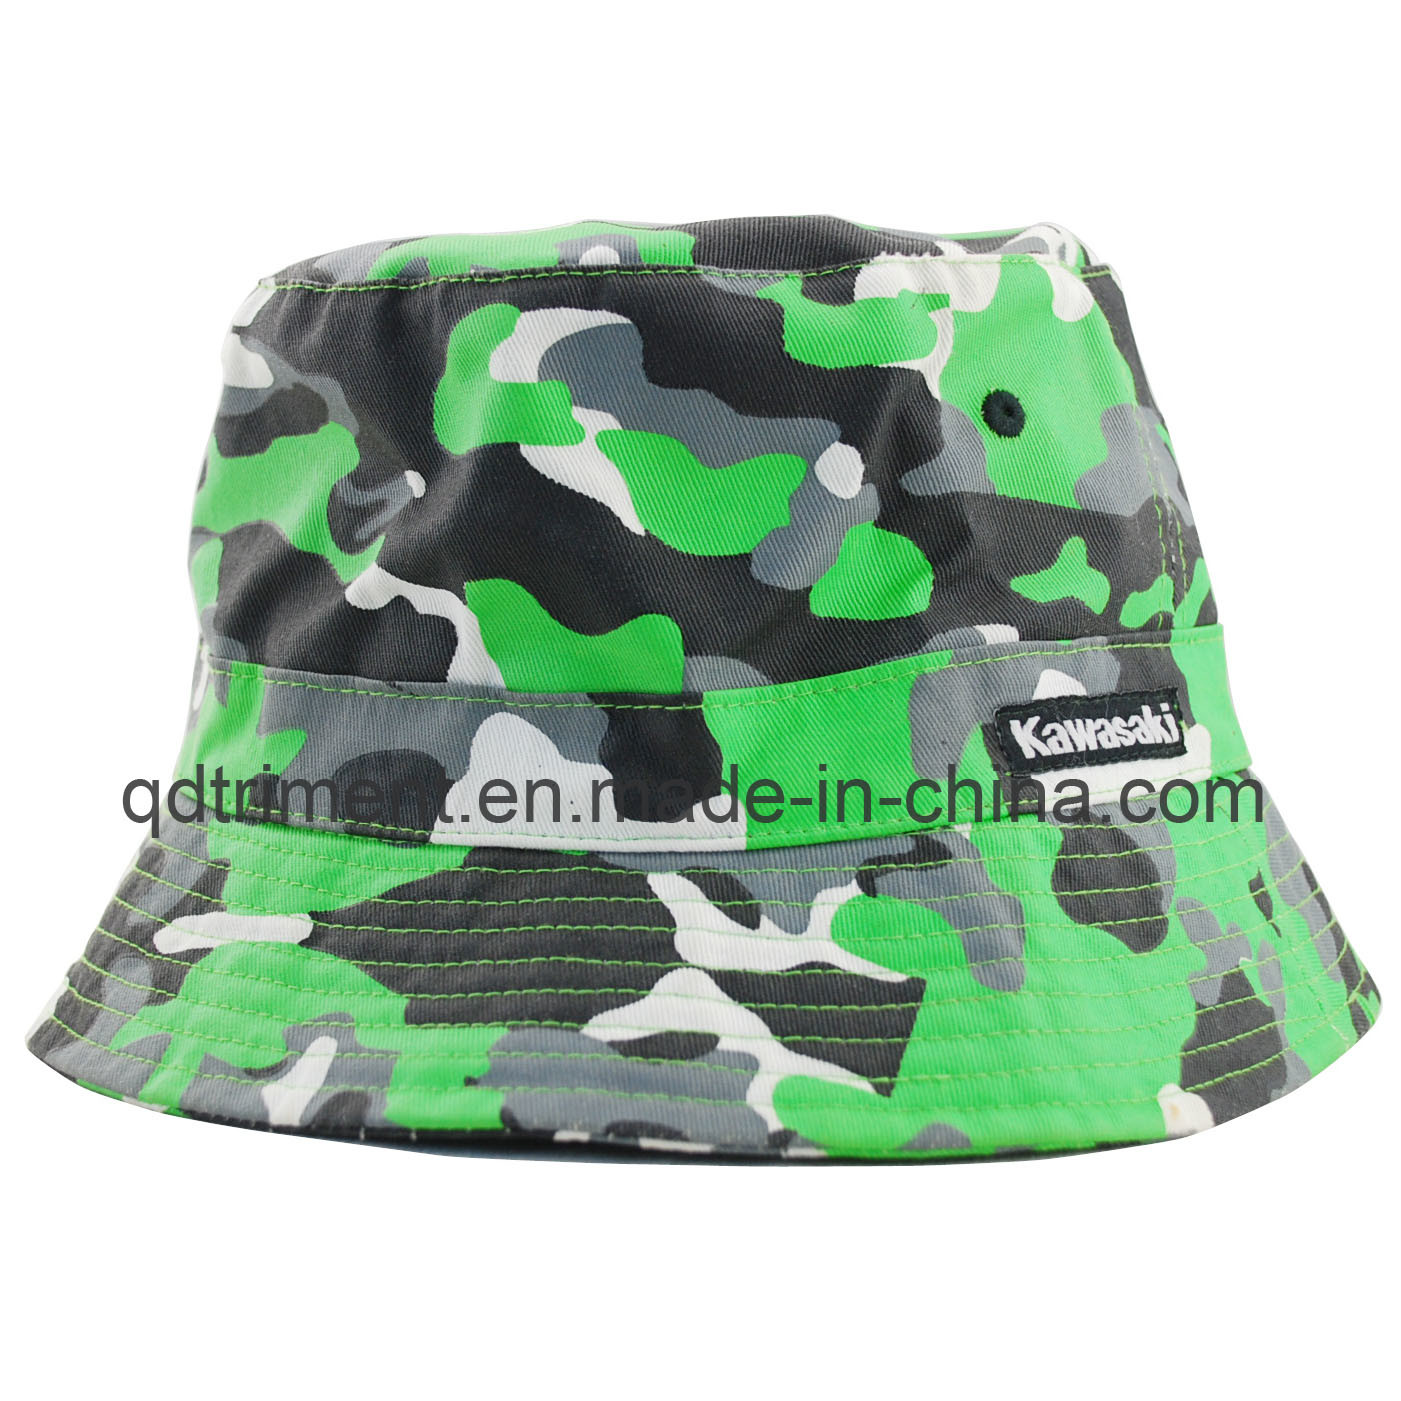 Flower Print Cotton Woven Plain Cloth Leisure Bucket Hat (TRBH14002)